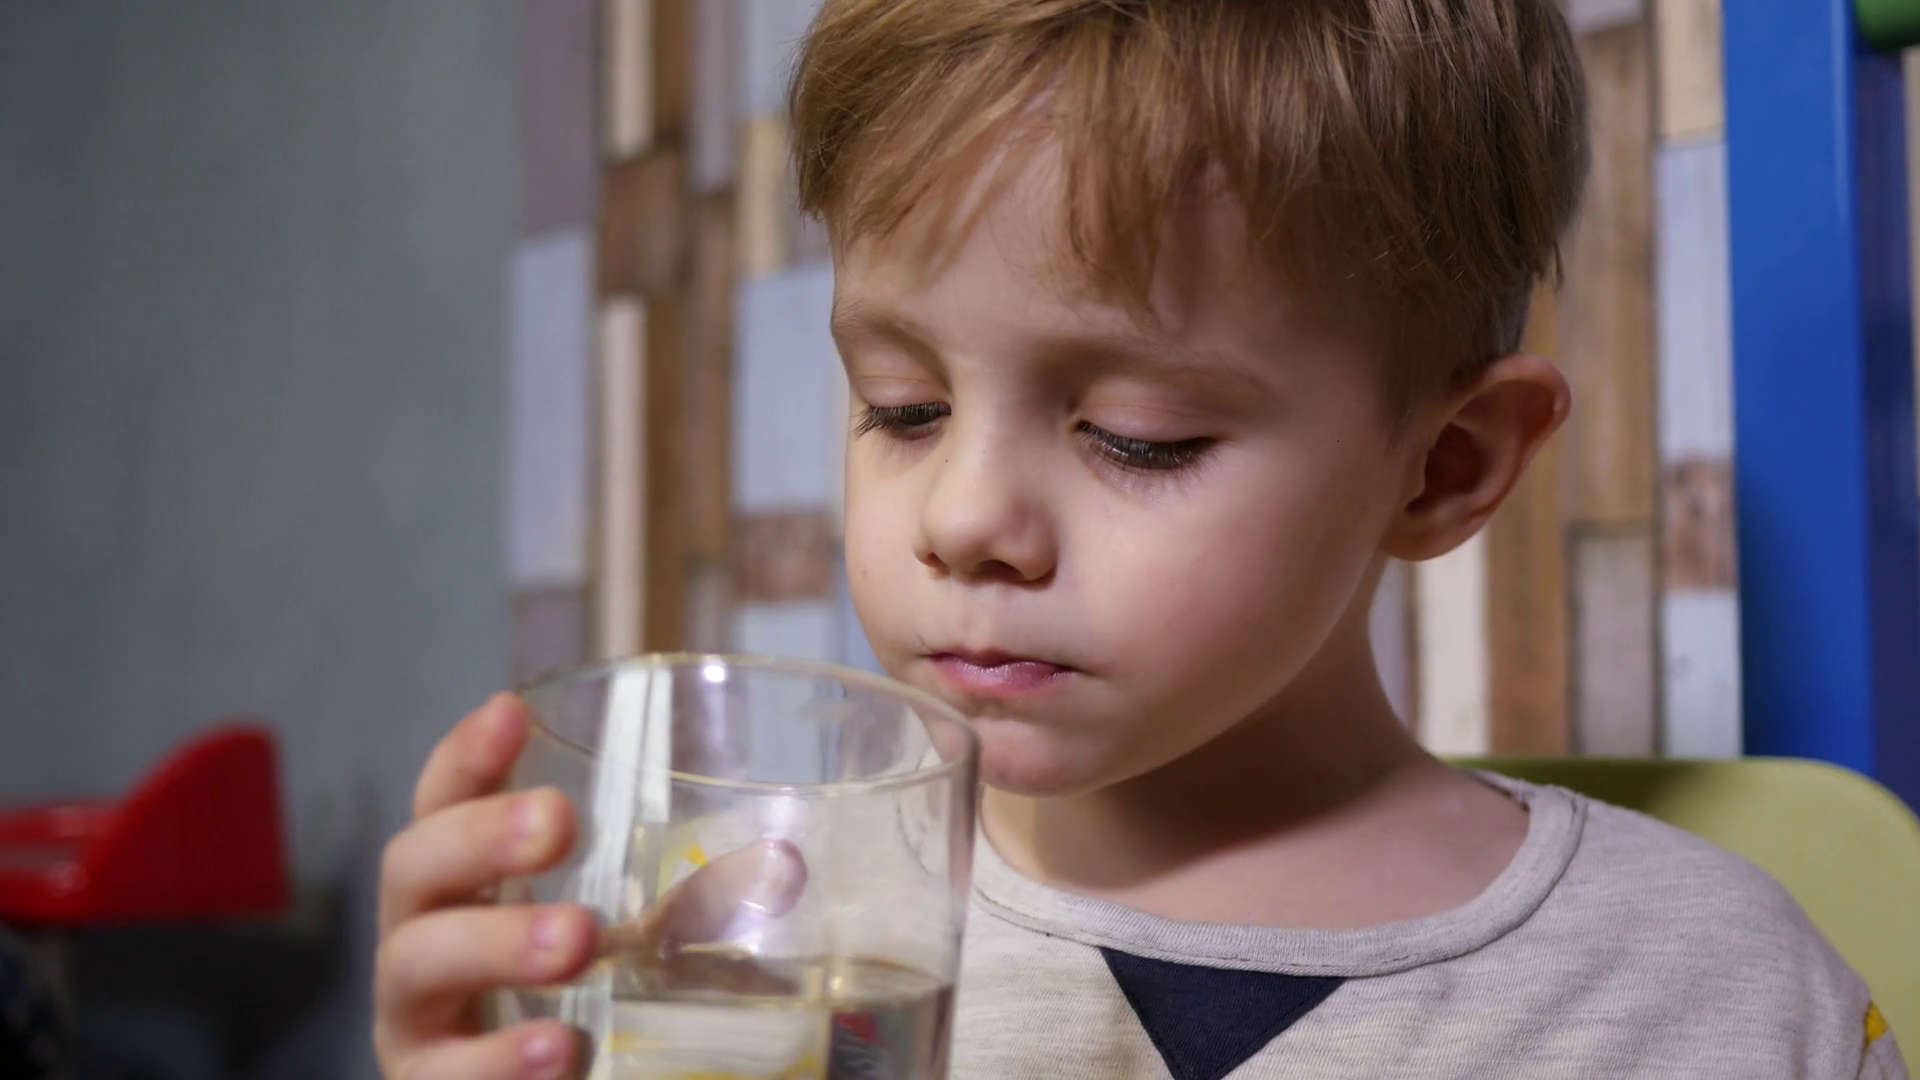 Little Cute Kid Boy Drink Clear Pure Water From A Glass Cup Healthy ...